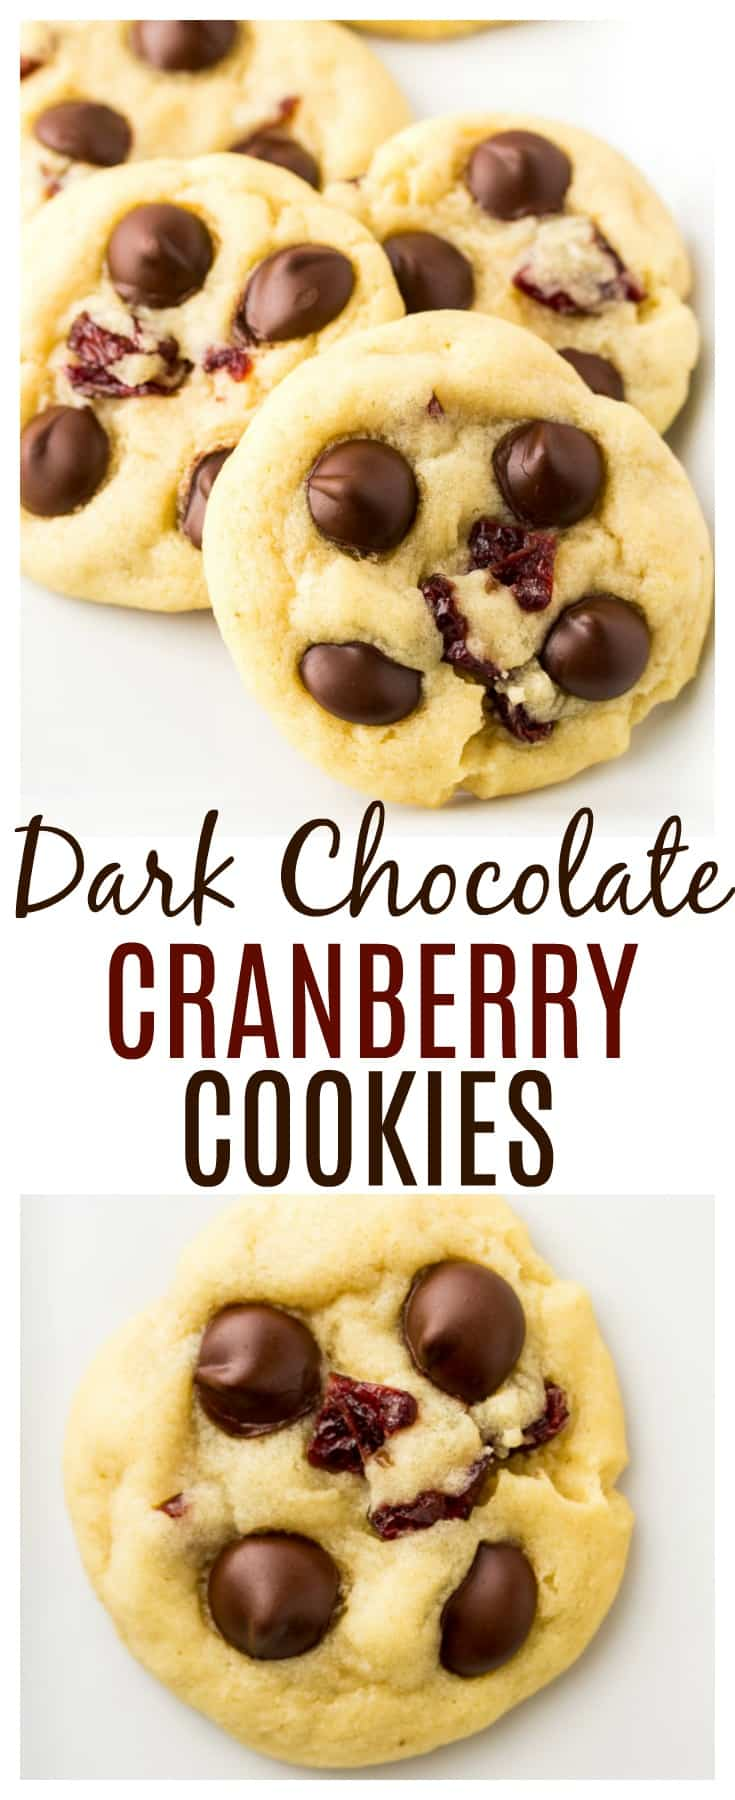 Dark Chocolate Chip Cranberry Cookies - soft, chewy, and incredibly delicious! Decadent enough for special occasions and Christmas cookie exchanges, yet simple enough to make just because! | #dlbrecipes #chocolatecranberry #cookies #dessert #christmascookies